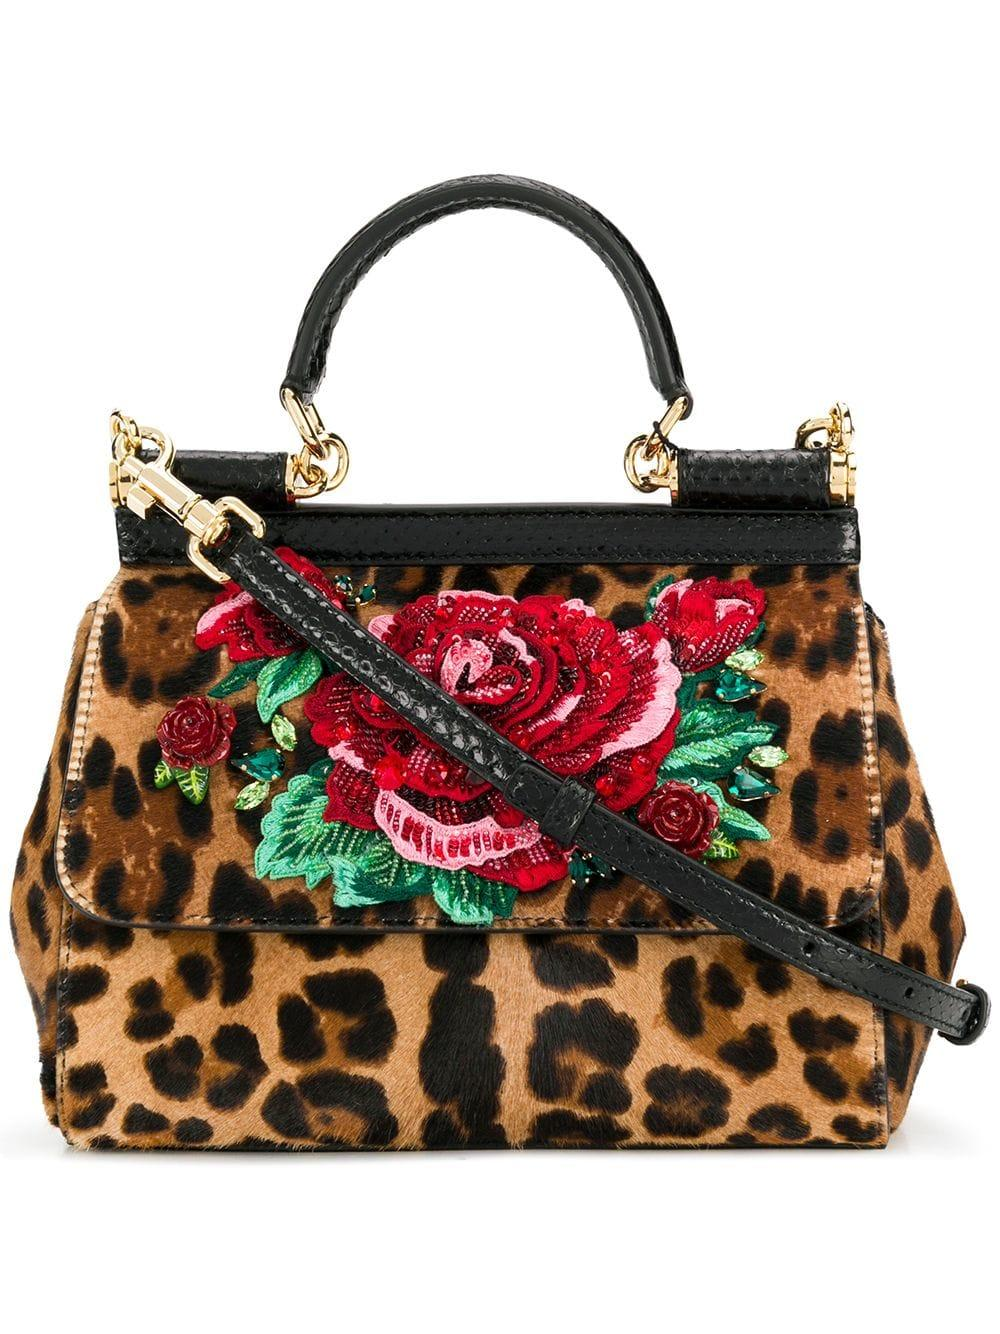 d2c853b57f Lyst - Dolce   Gabbana Miss Sicily Small Leather Shoulder Bag - Save 20%